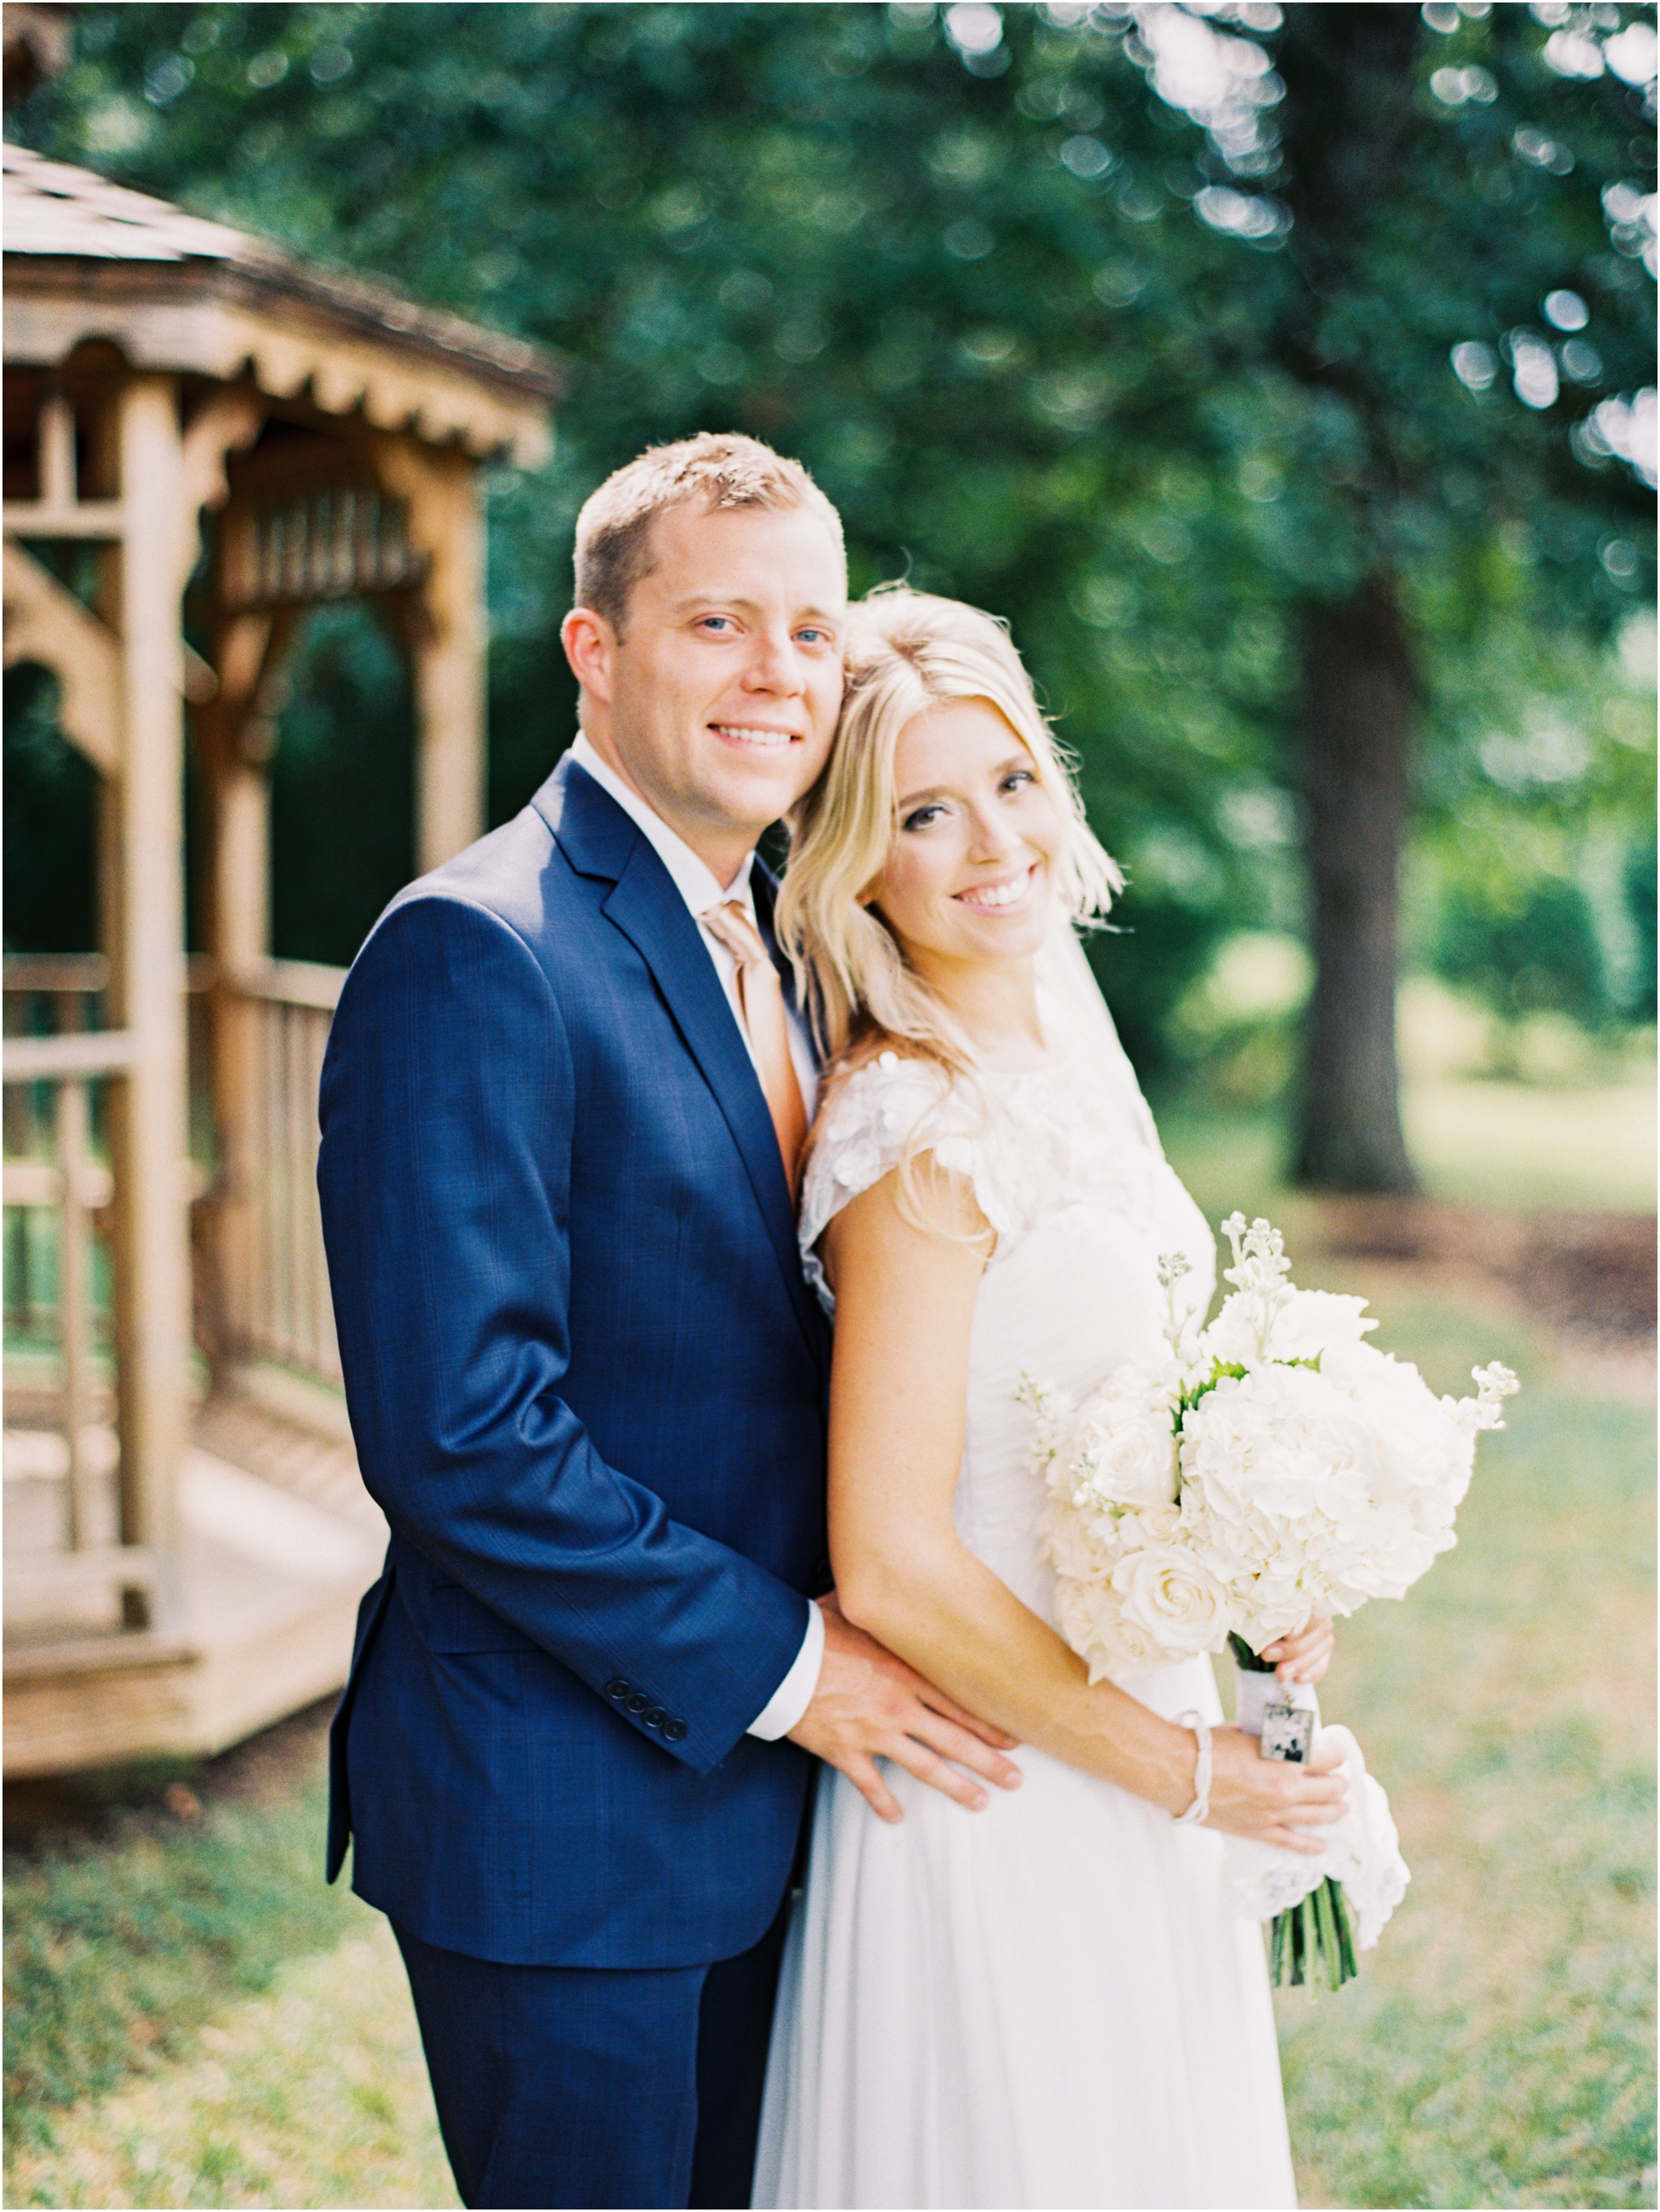 Buffalo MO Wedding at Timberline Barn by Jordan Brittley Photography